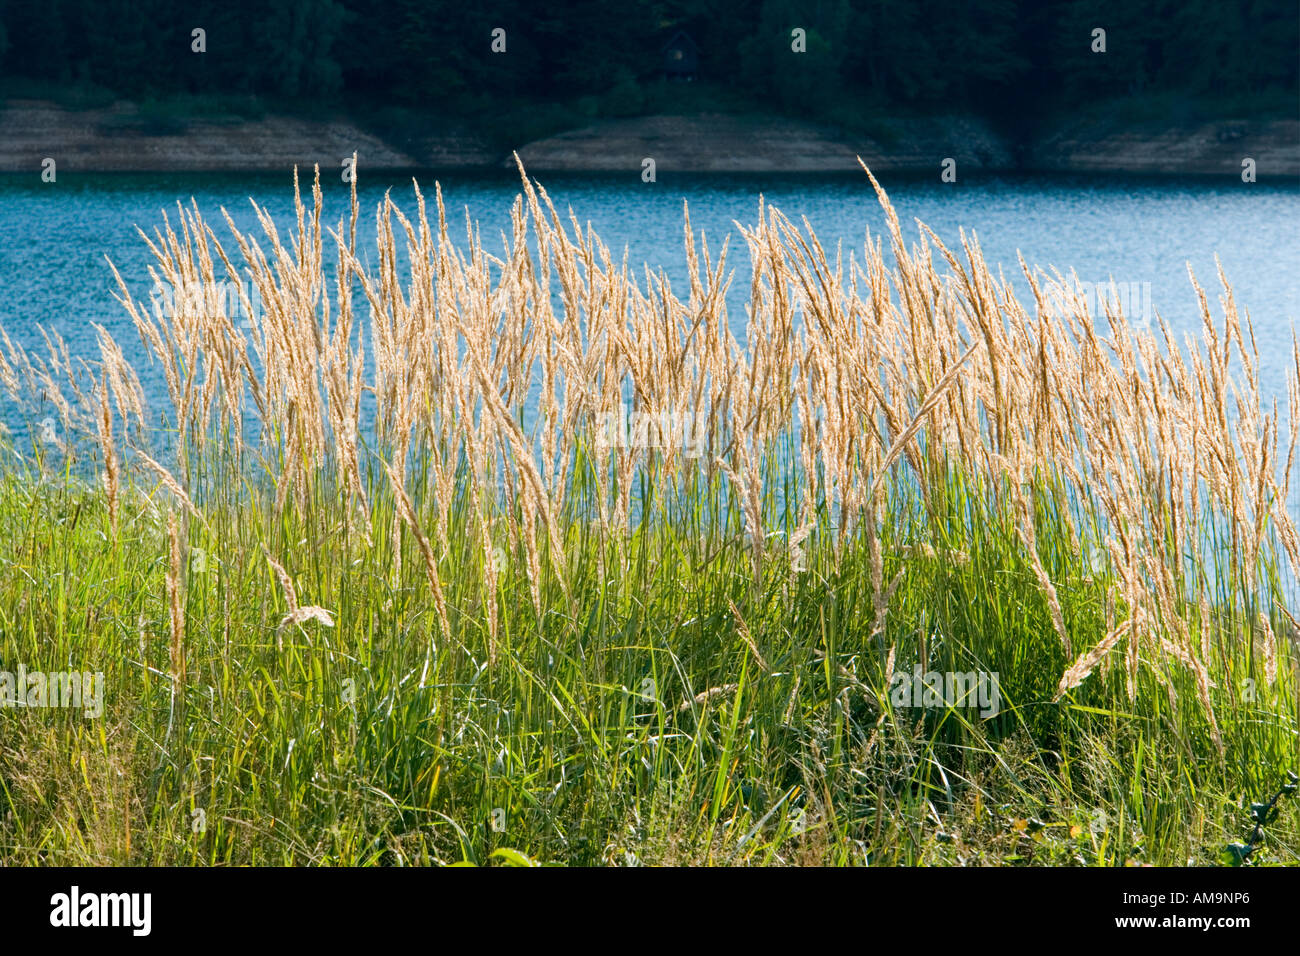 High grass against water Stock Photo